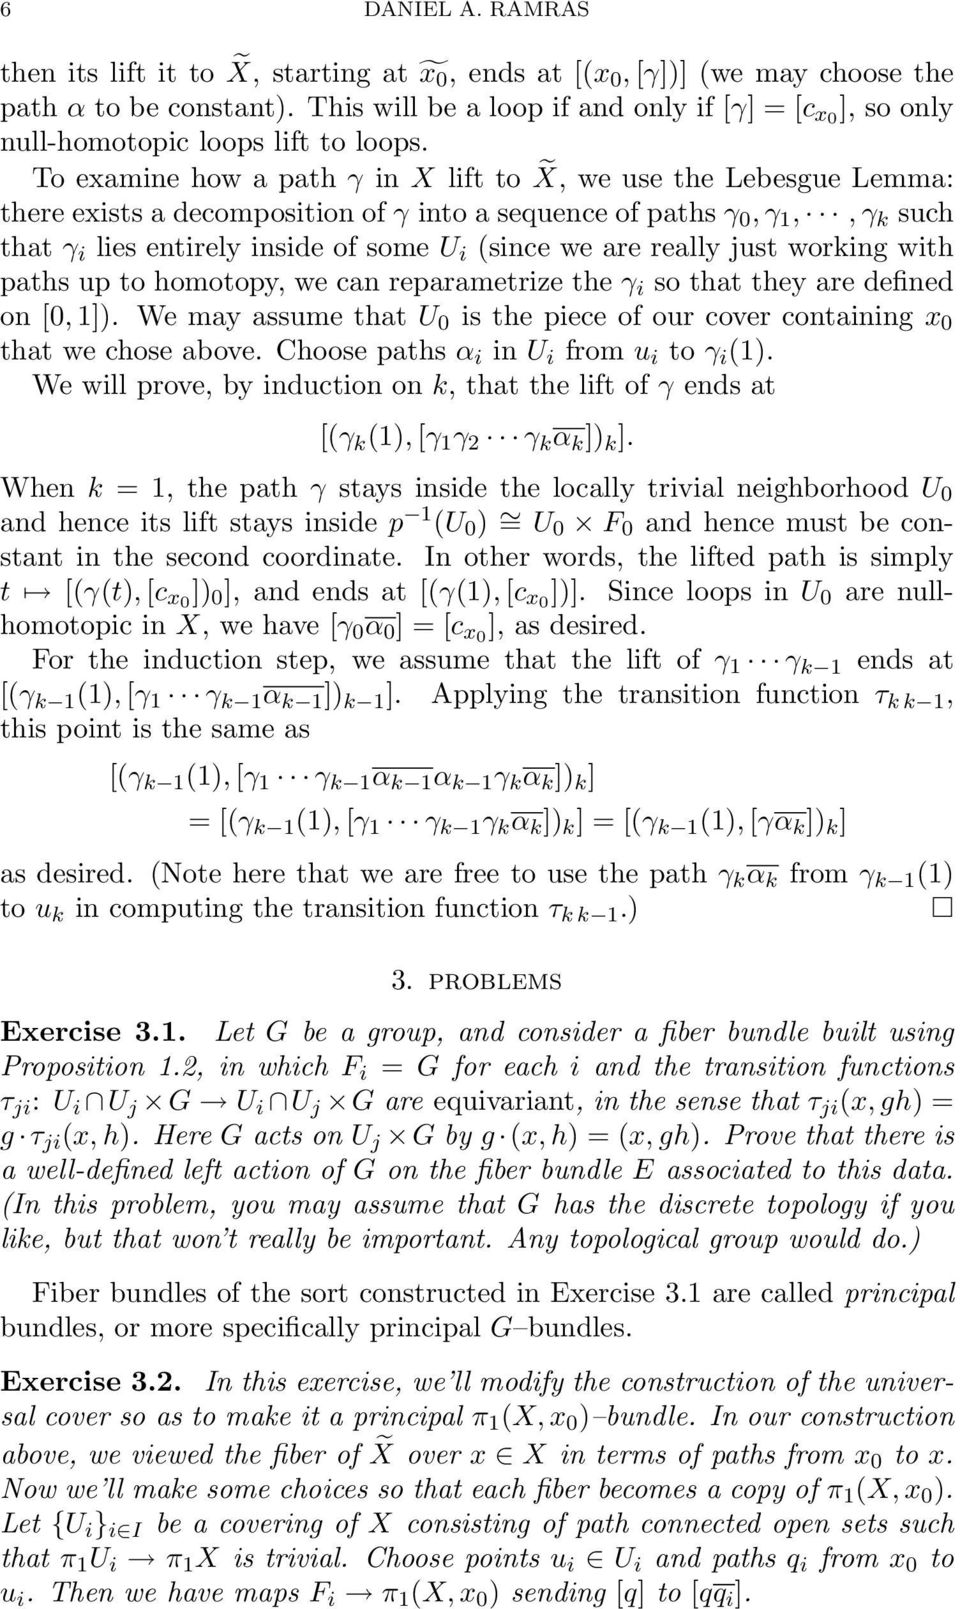 To examine how a path γ in X lift to X, we use the Lebesgue Lemma: there exists a decomposition of γ into a sequence of paths γ 0, γ 1,, γ k such that γ i lies entirely inside of some U i (since we